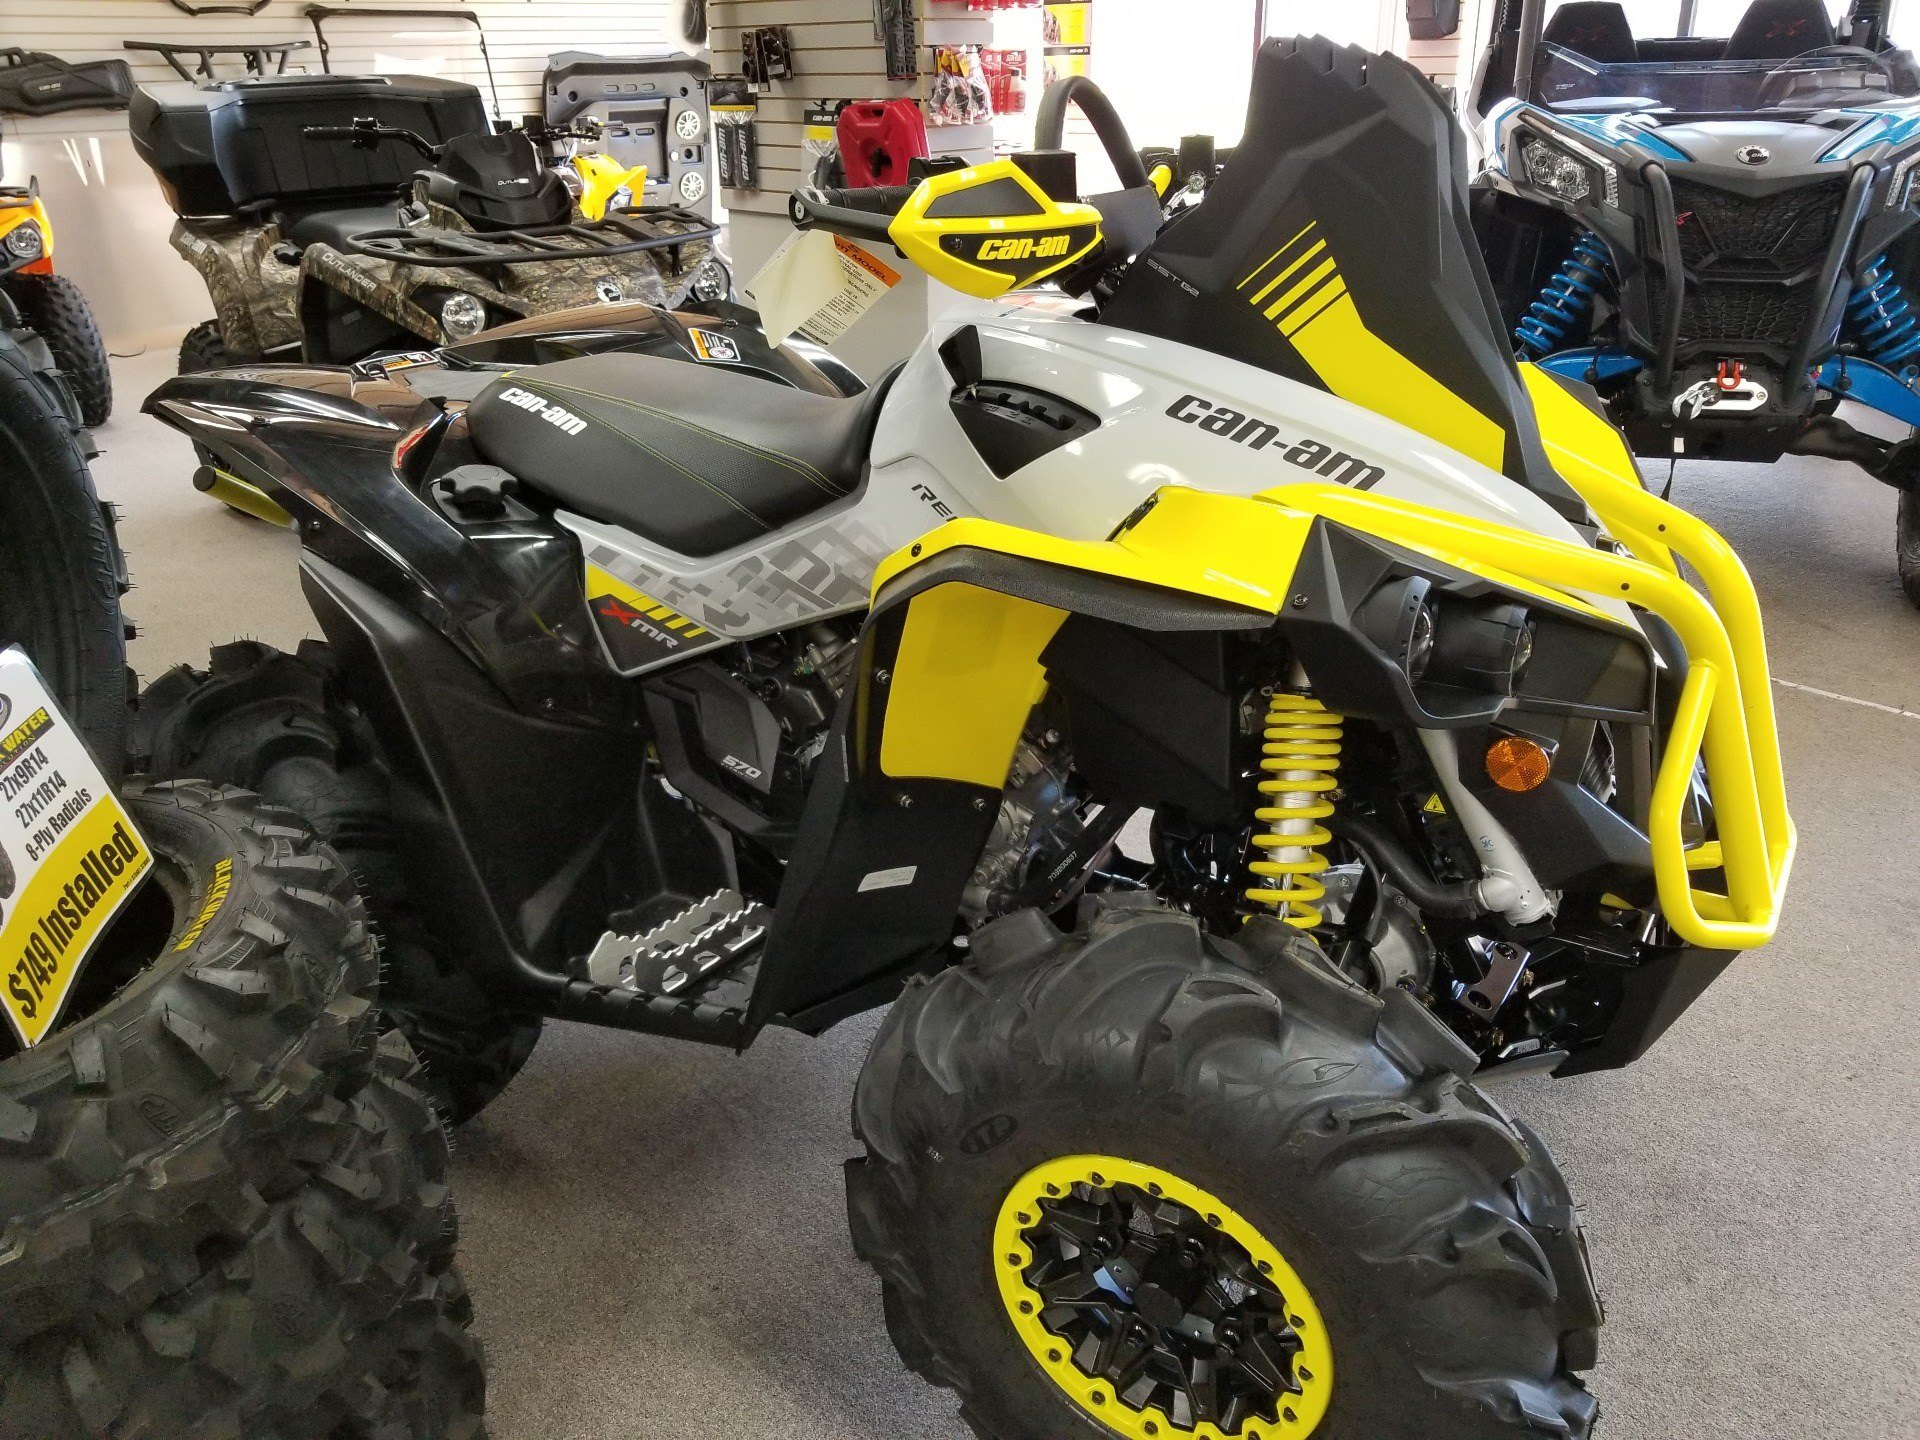 2019 Can-Am Renegade X MR 570 in Mineral Wells, West Virginia - Photo 3